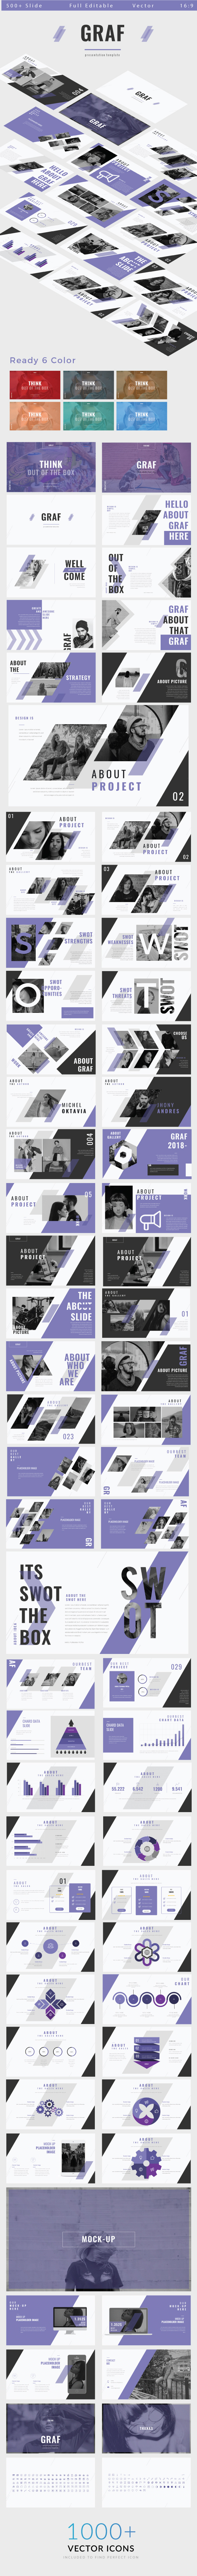 GraphicRiver Graf Powerpoint Template 21056994